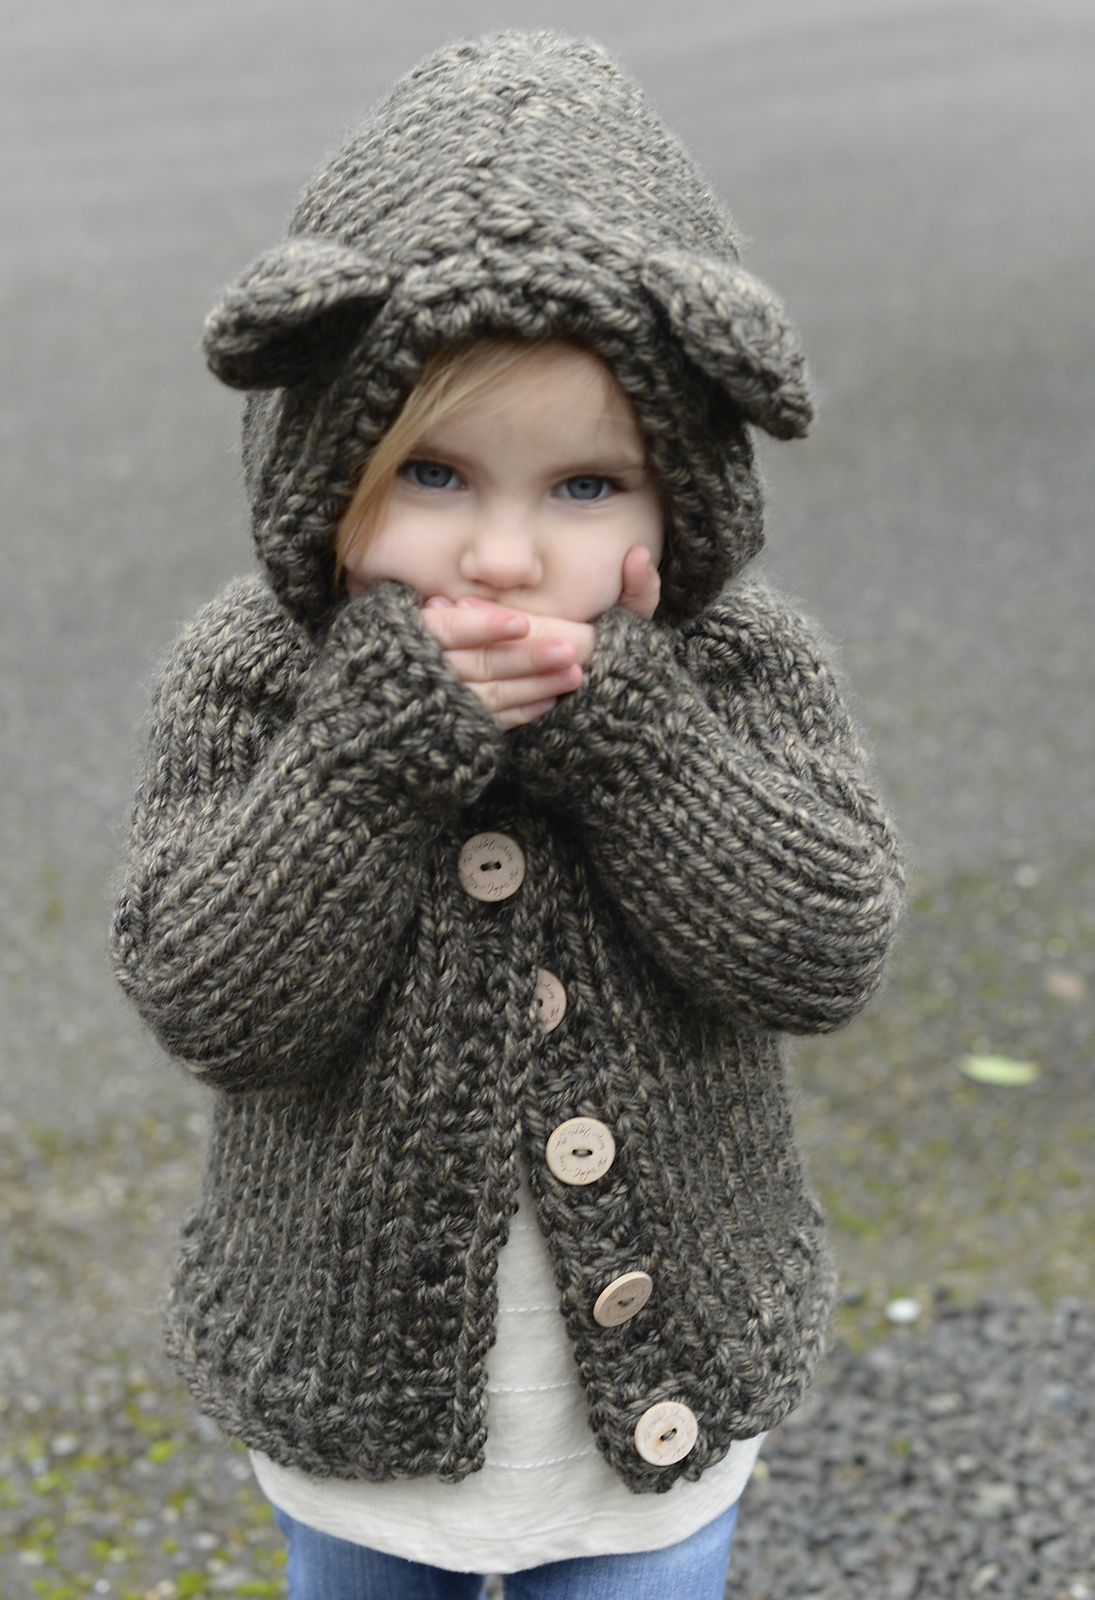 Bladyn Bear Sweater pattern by Heidi May | Pinterest | Lion brand ...